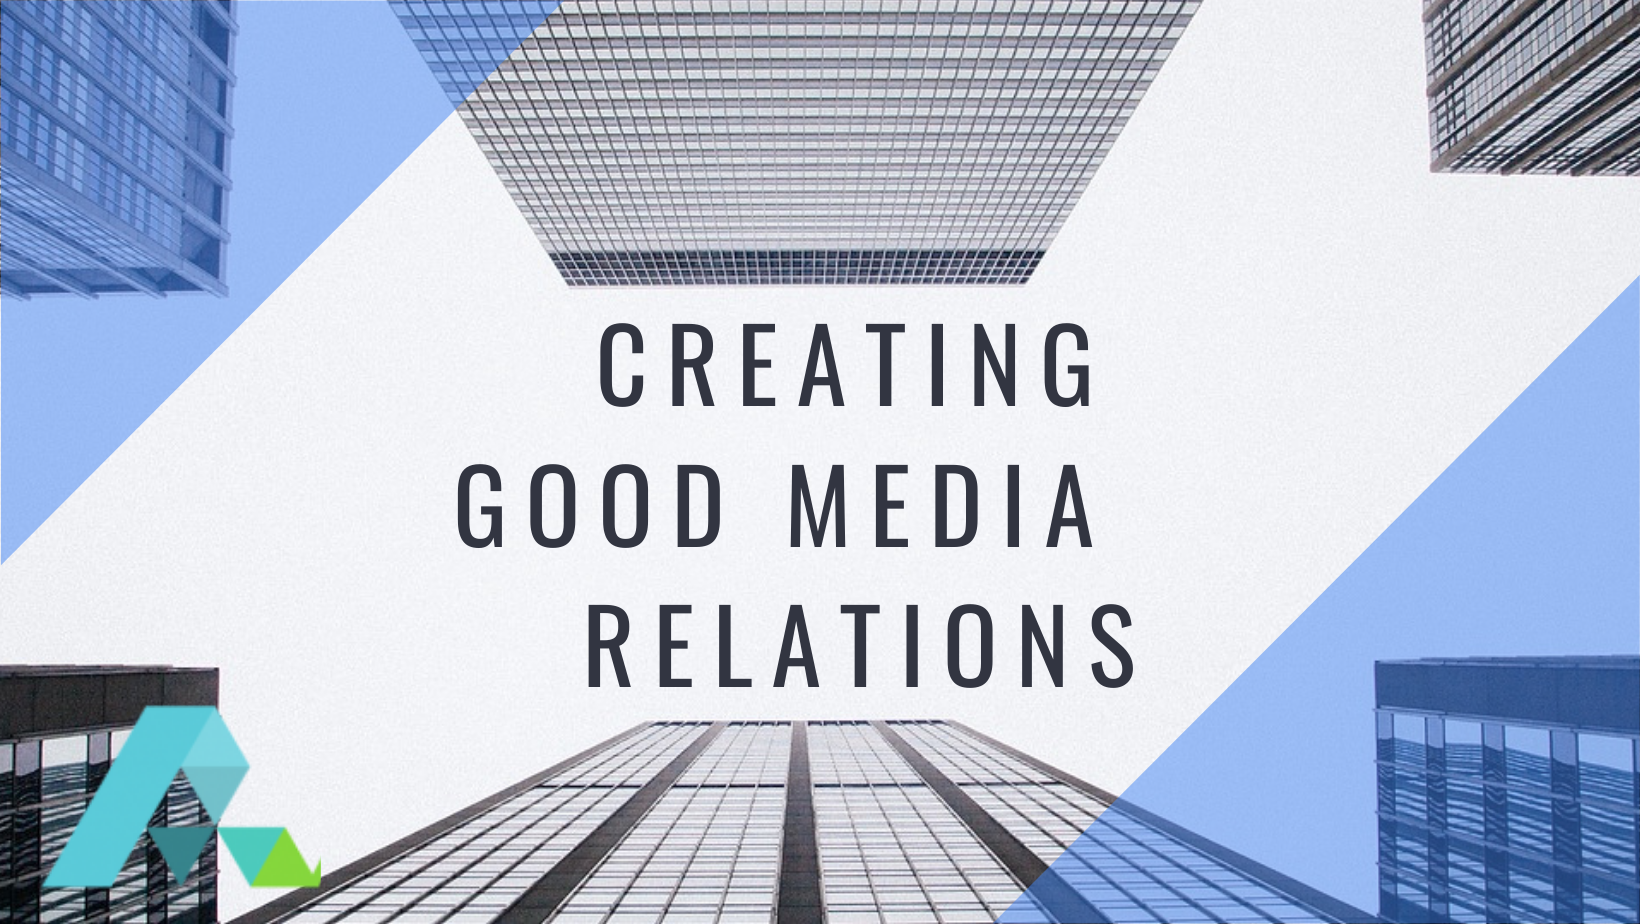 Tips on Creating Good Media Relations